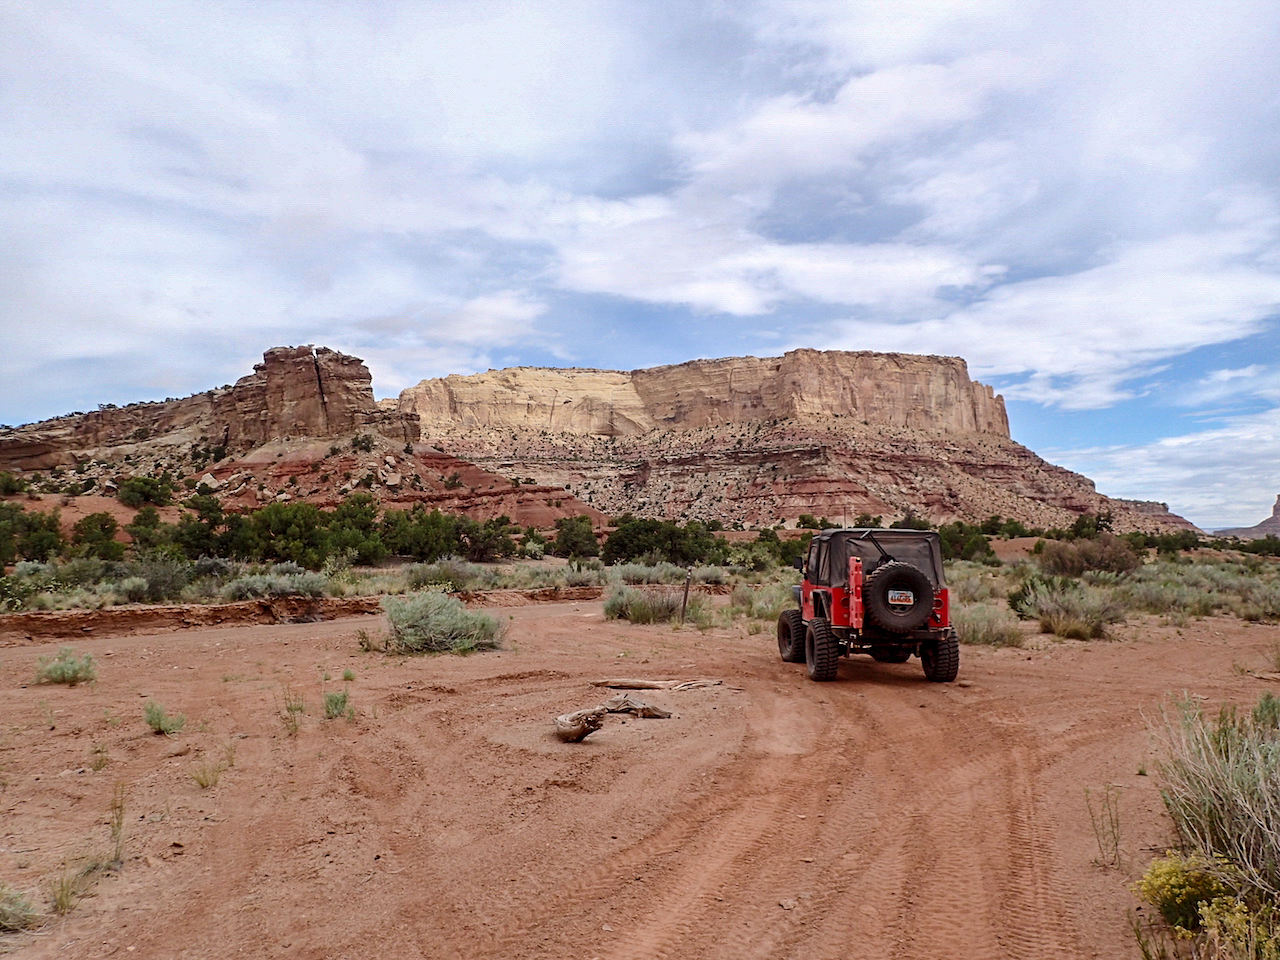 Offroad Trails in Utah on arches national park utah map, moab blm map, moab town map, johnson canyon st. george utah map, zion utah map, altamont utah to vernal utah map, moab desert map, transamerica trail map, moab colorado river map, moab middle east map,